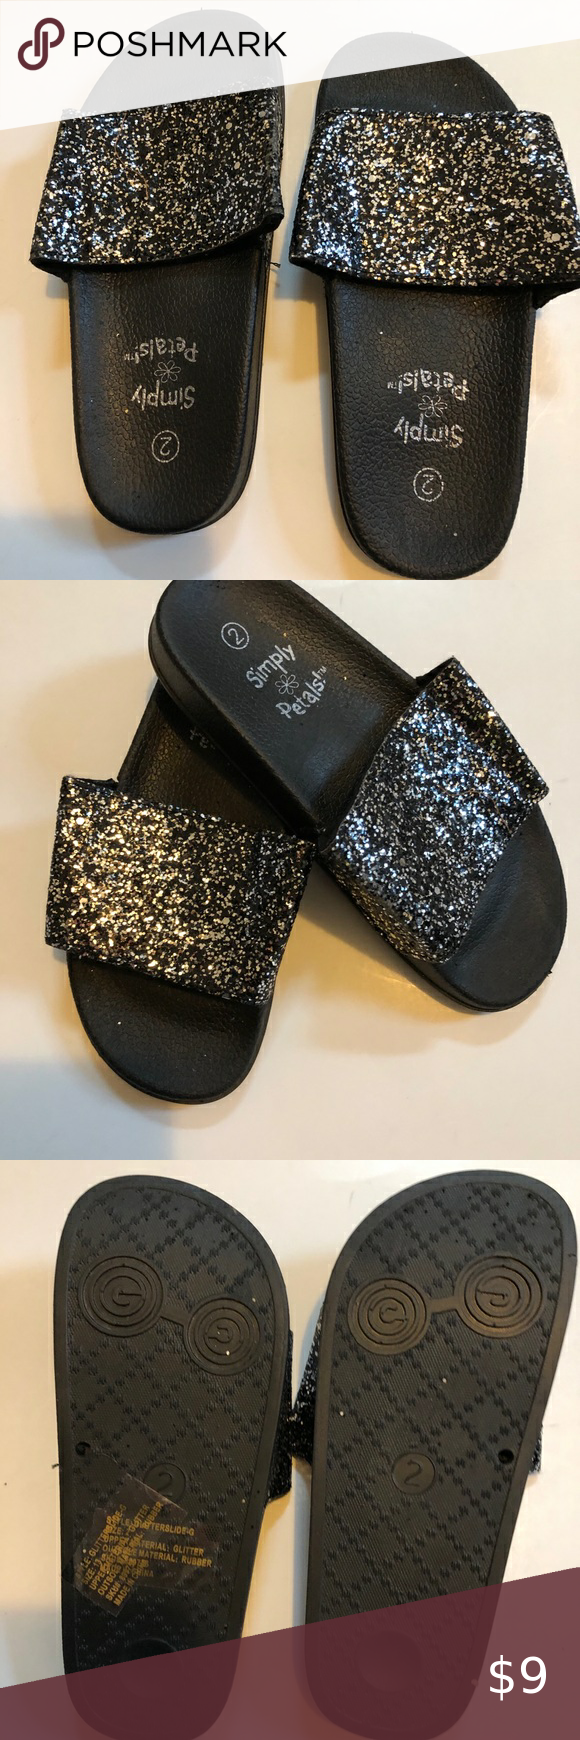 Slippers for girls, Simple shoes